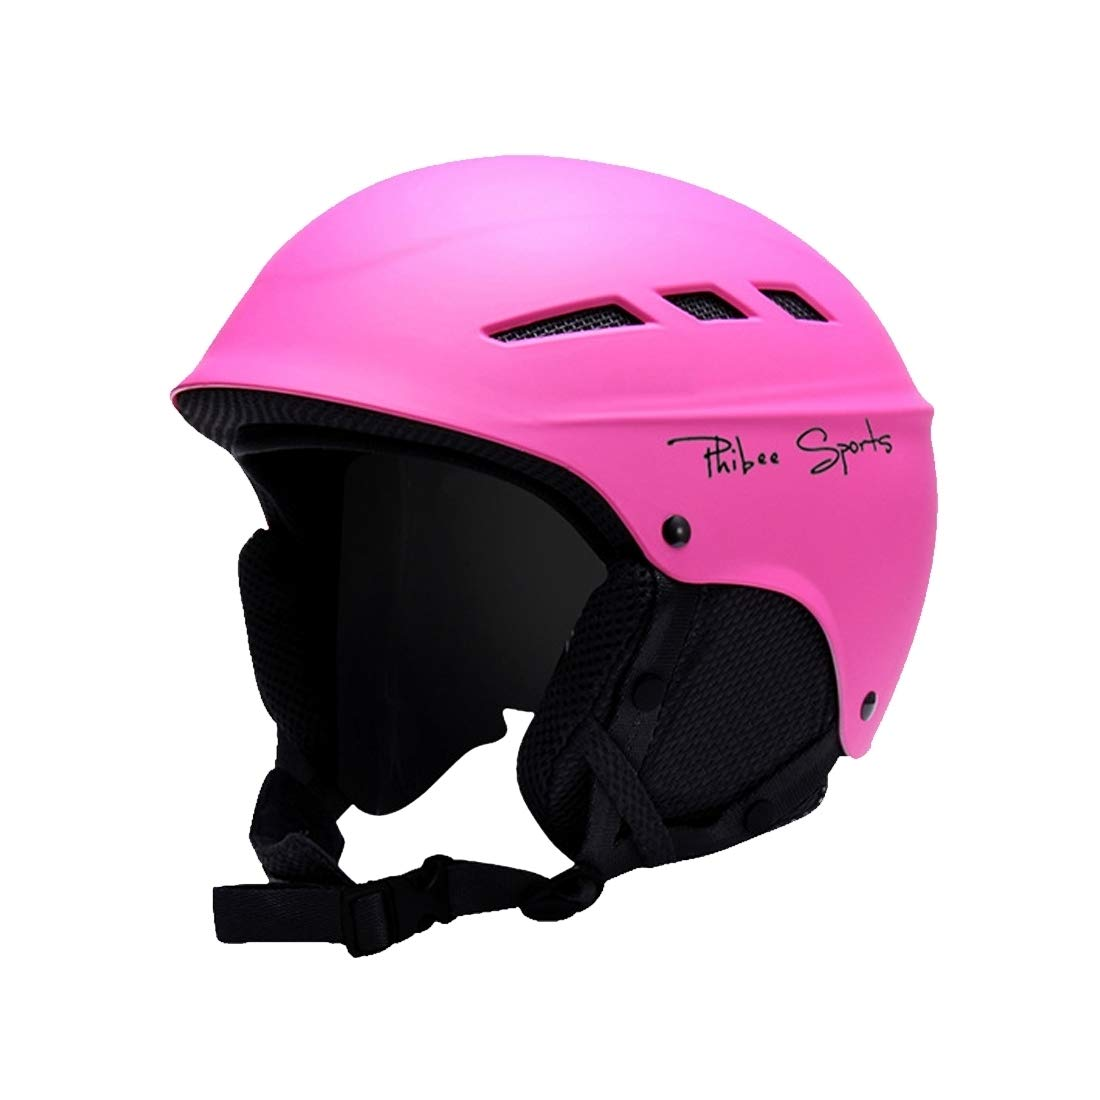 VAXT Fit for 56-62cm, Sizing: L, Exclusive and Twofold Plate Skiing Professional Protective Helmet 8 Air Vents PC Shell Adjustable Buckle Parent-Child Protective Helmet